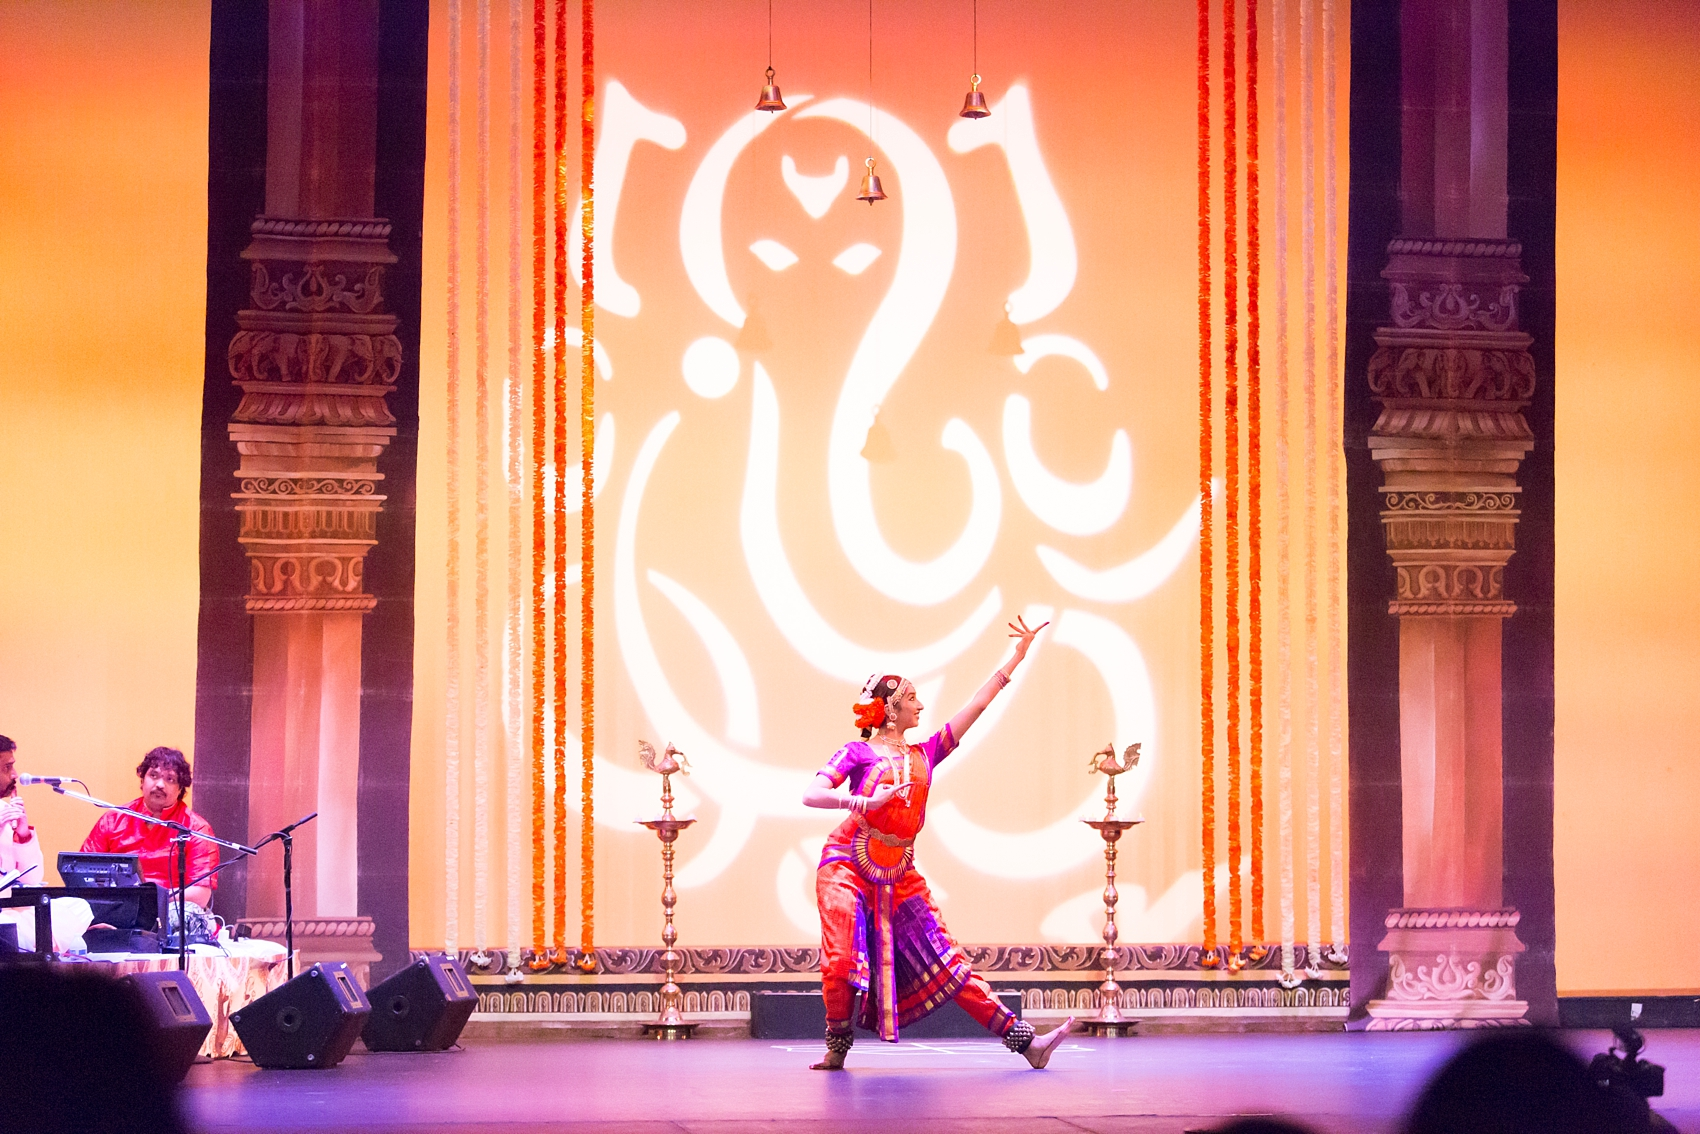 The first dance was performed in honor of the god Ganesha.